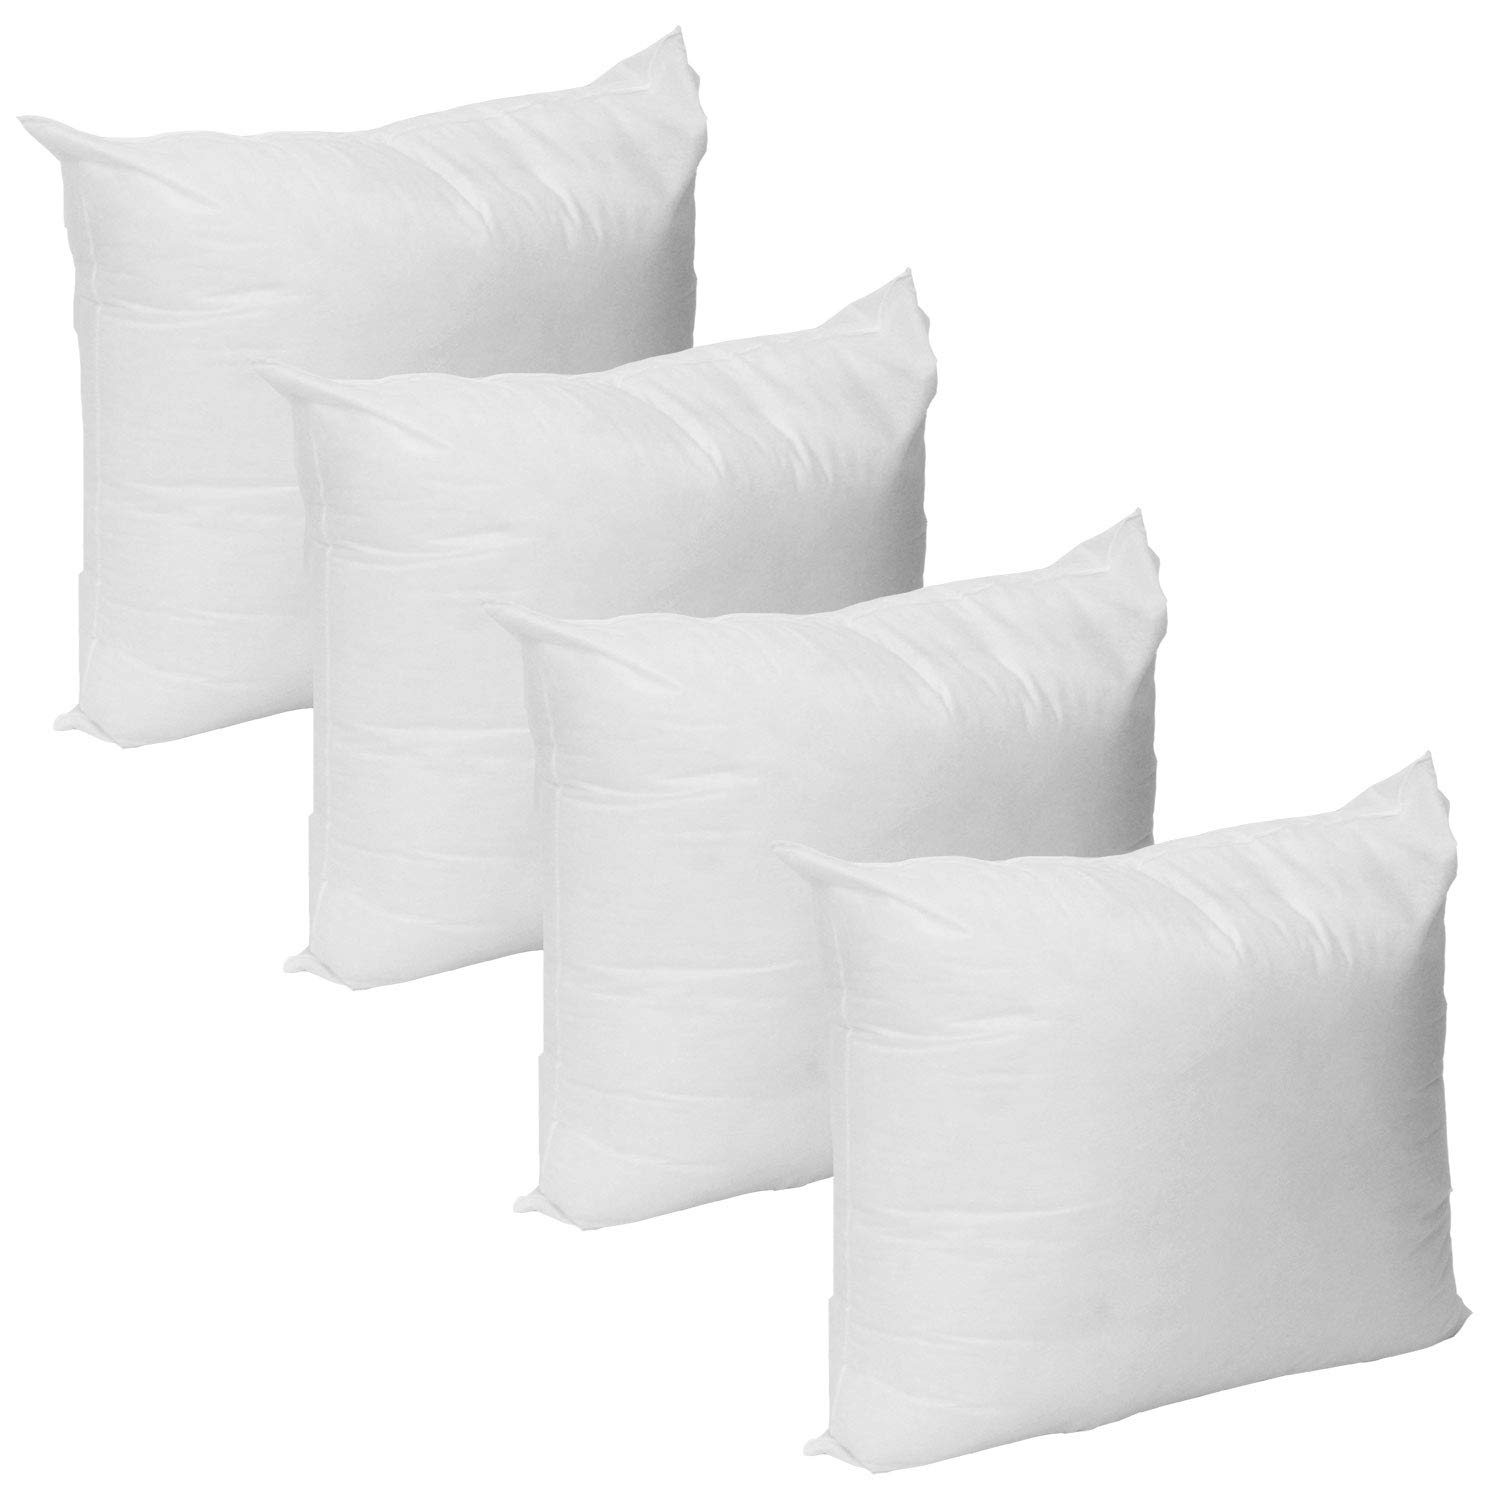 Mybecca Set of 4-18 x 18 Super Premium Hypoallergenic Stuffer Pillow Insert Sham Square Form Polyester, Standard/White - Made in The USA by Mybecca